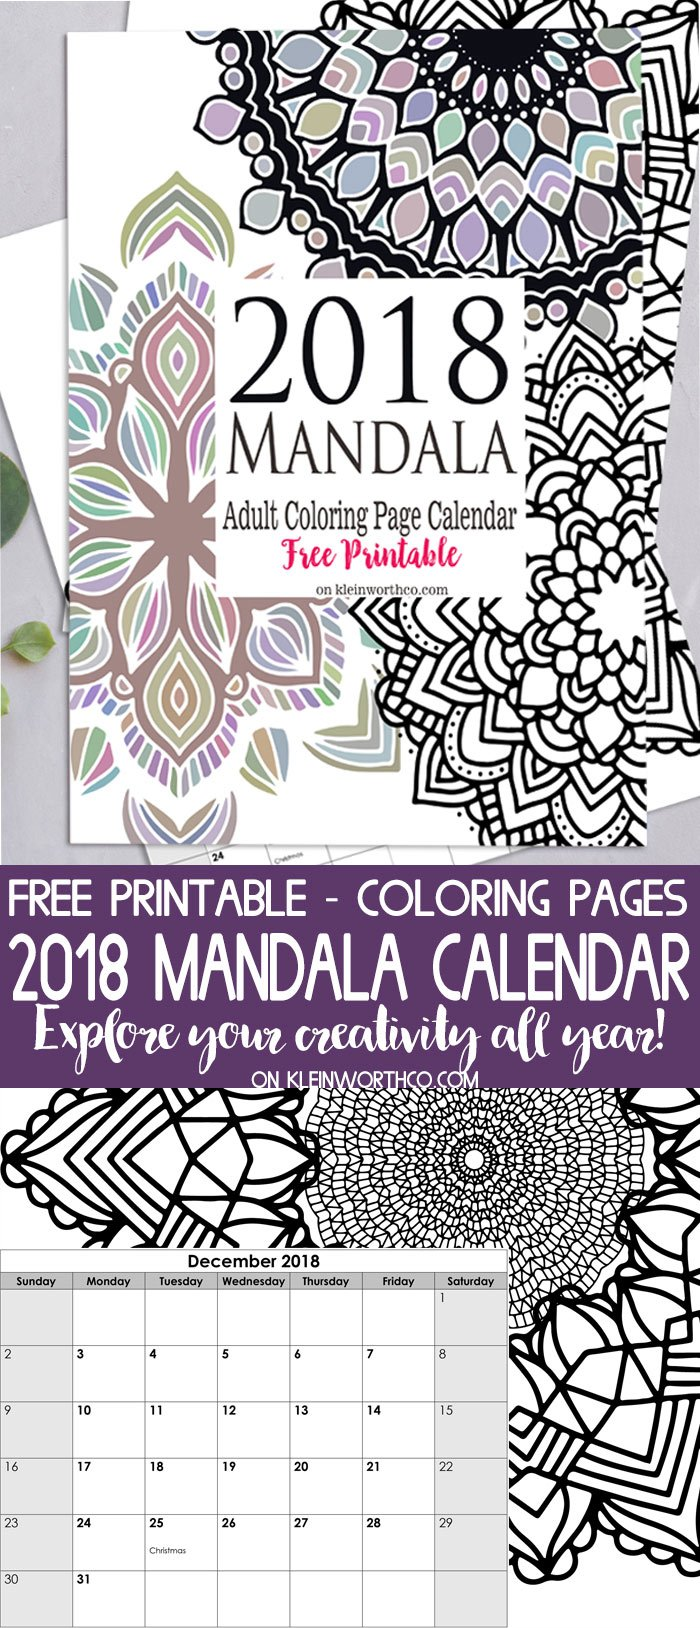 picture relating to Printable Coloring Calendar titled 2018 Mandala Grownup Coloring Webpage Calendar No cost Printable